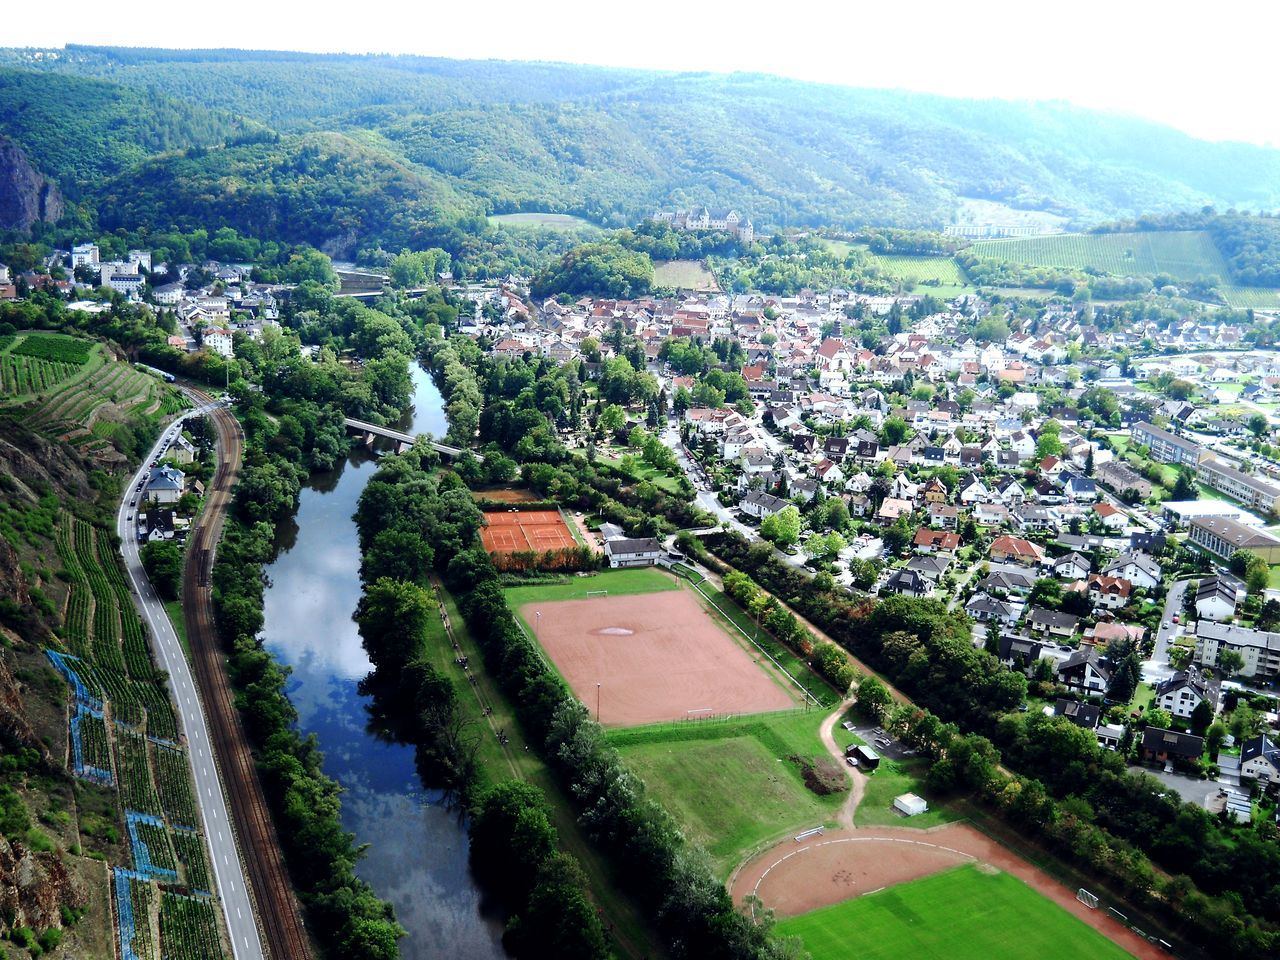 Bad Münster Am Stein Rheinland-Pfalz  Germany🇩🇪 Deutschland Town River Train Line Football Field Hills Eagleview EyeEmNewHere